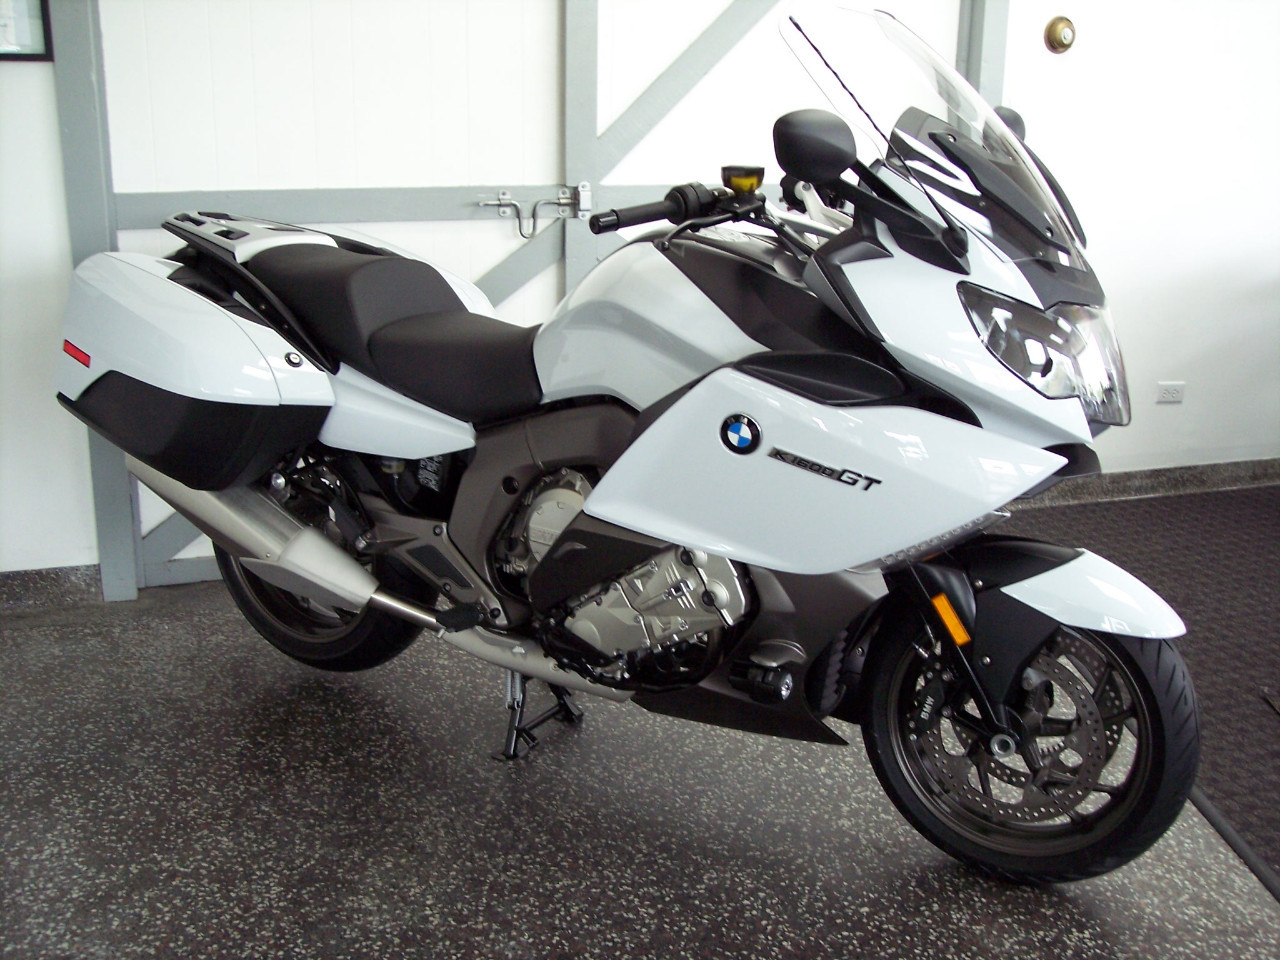 2015 Bmw K1600gt Sport Touring Motorcycle From Barrington Iltoday